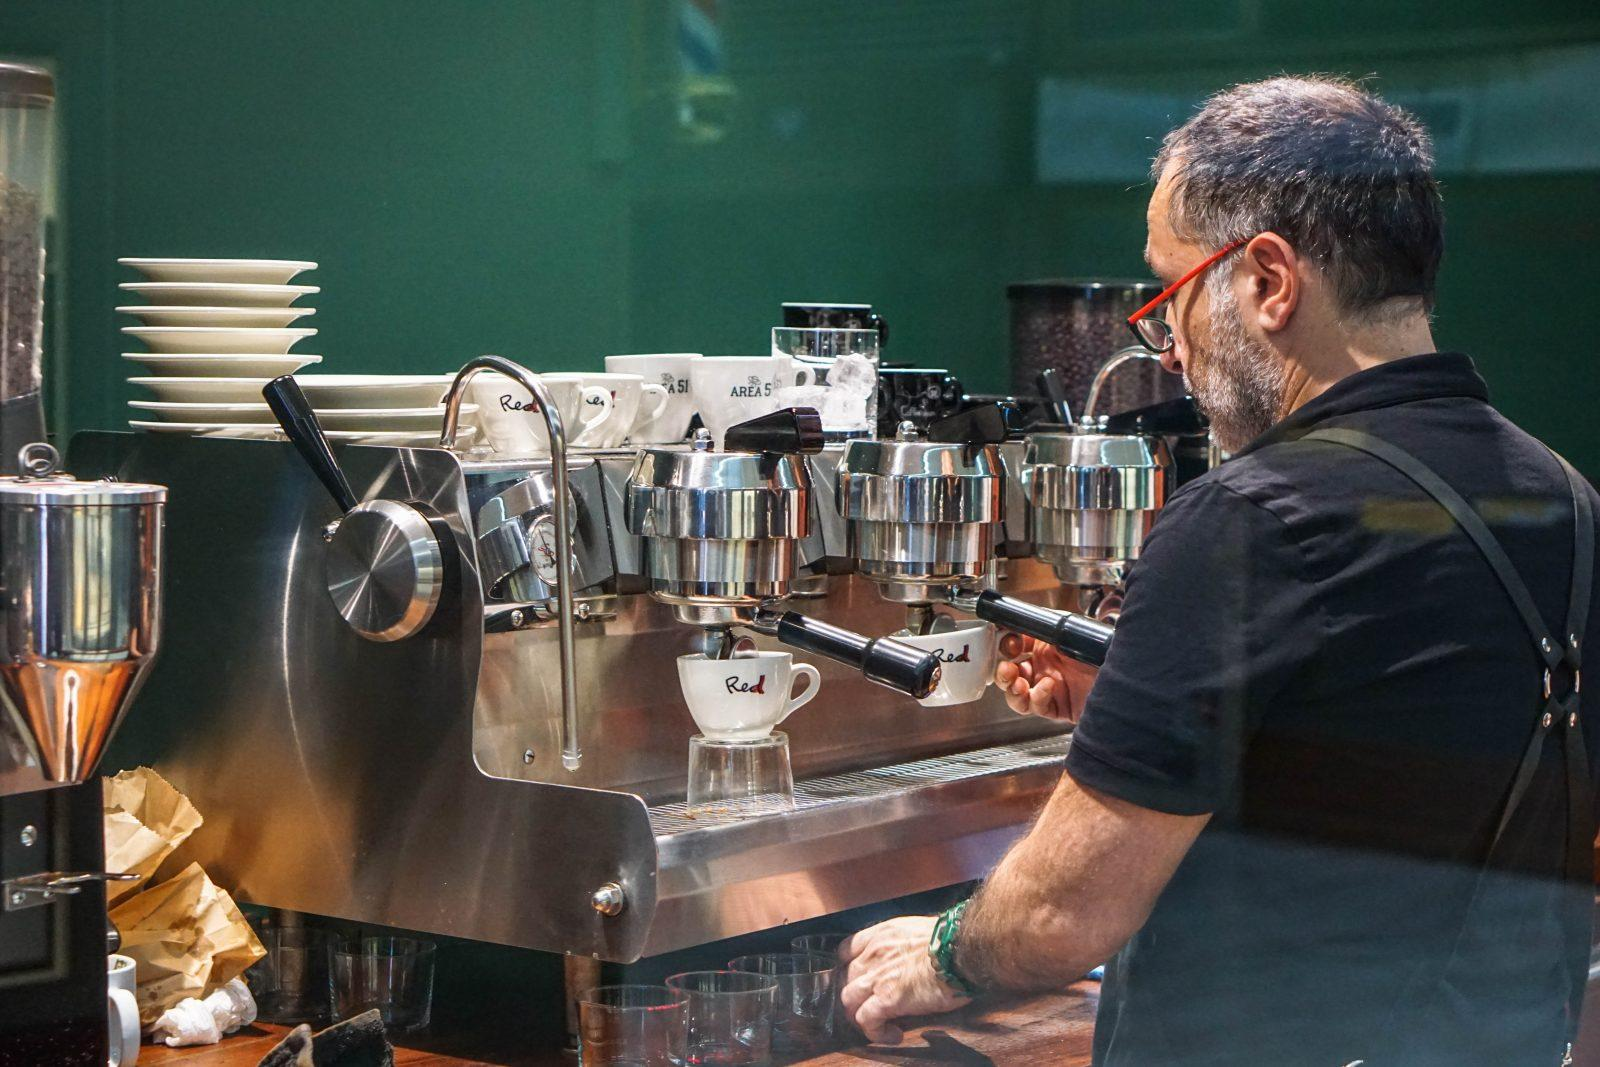 The three-group Synesso is always put to work